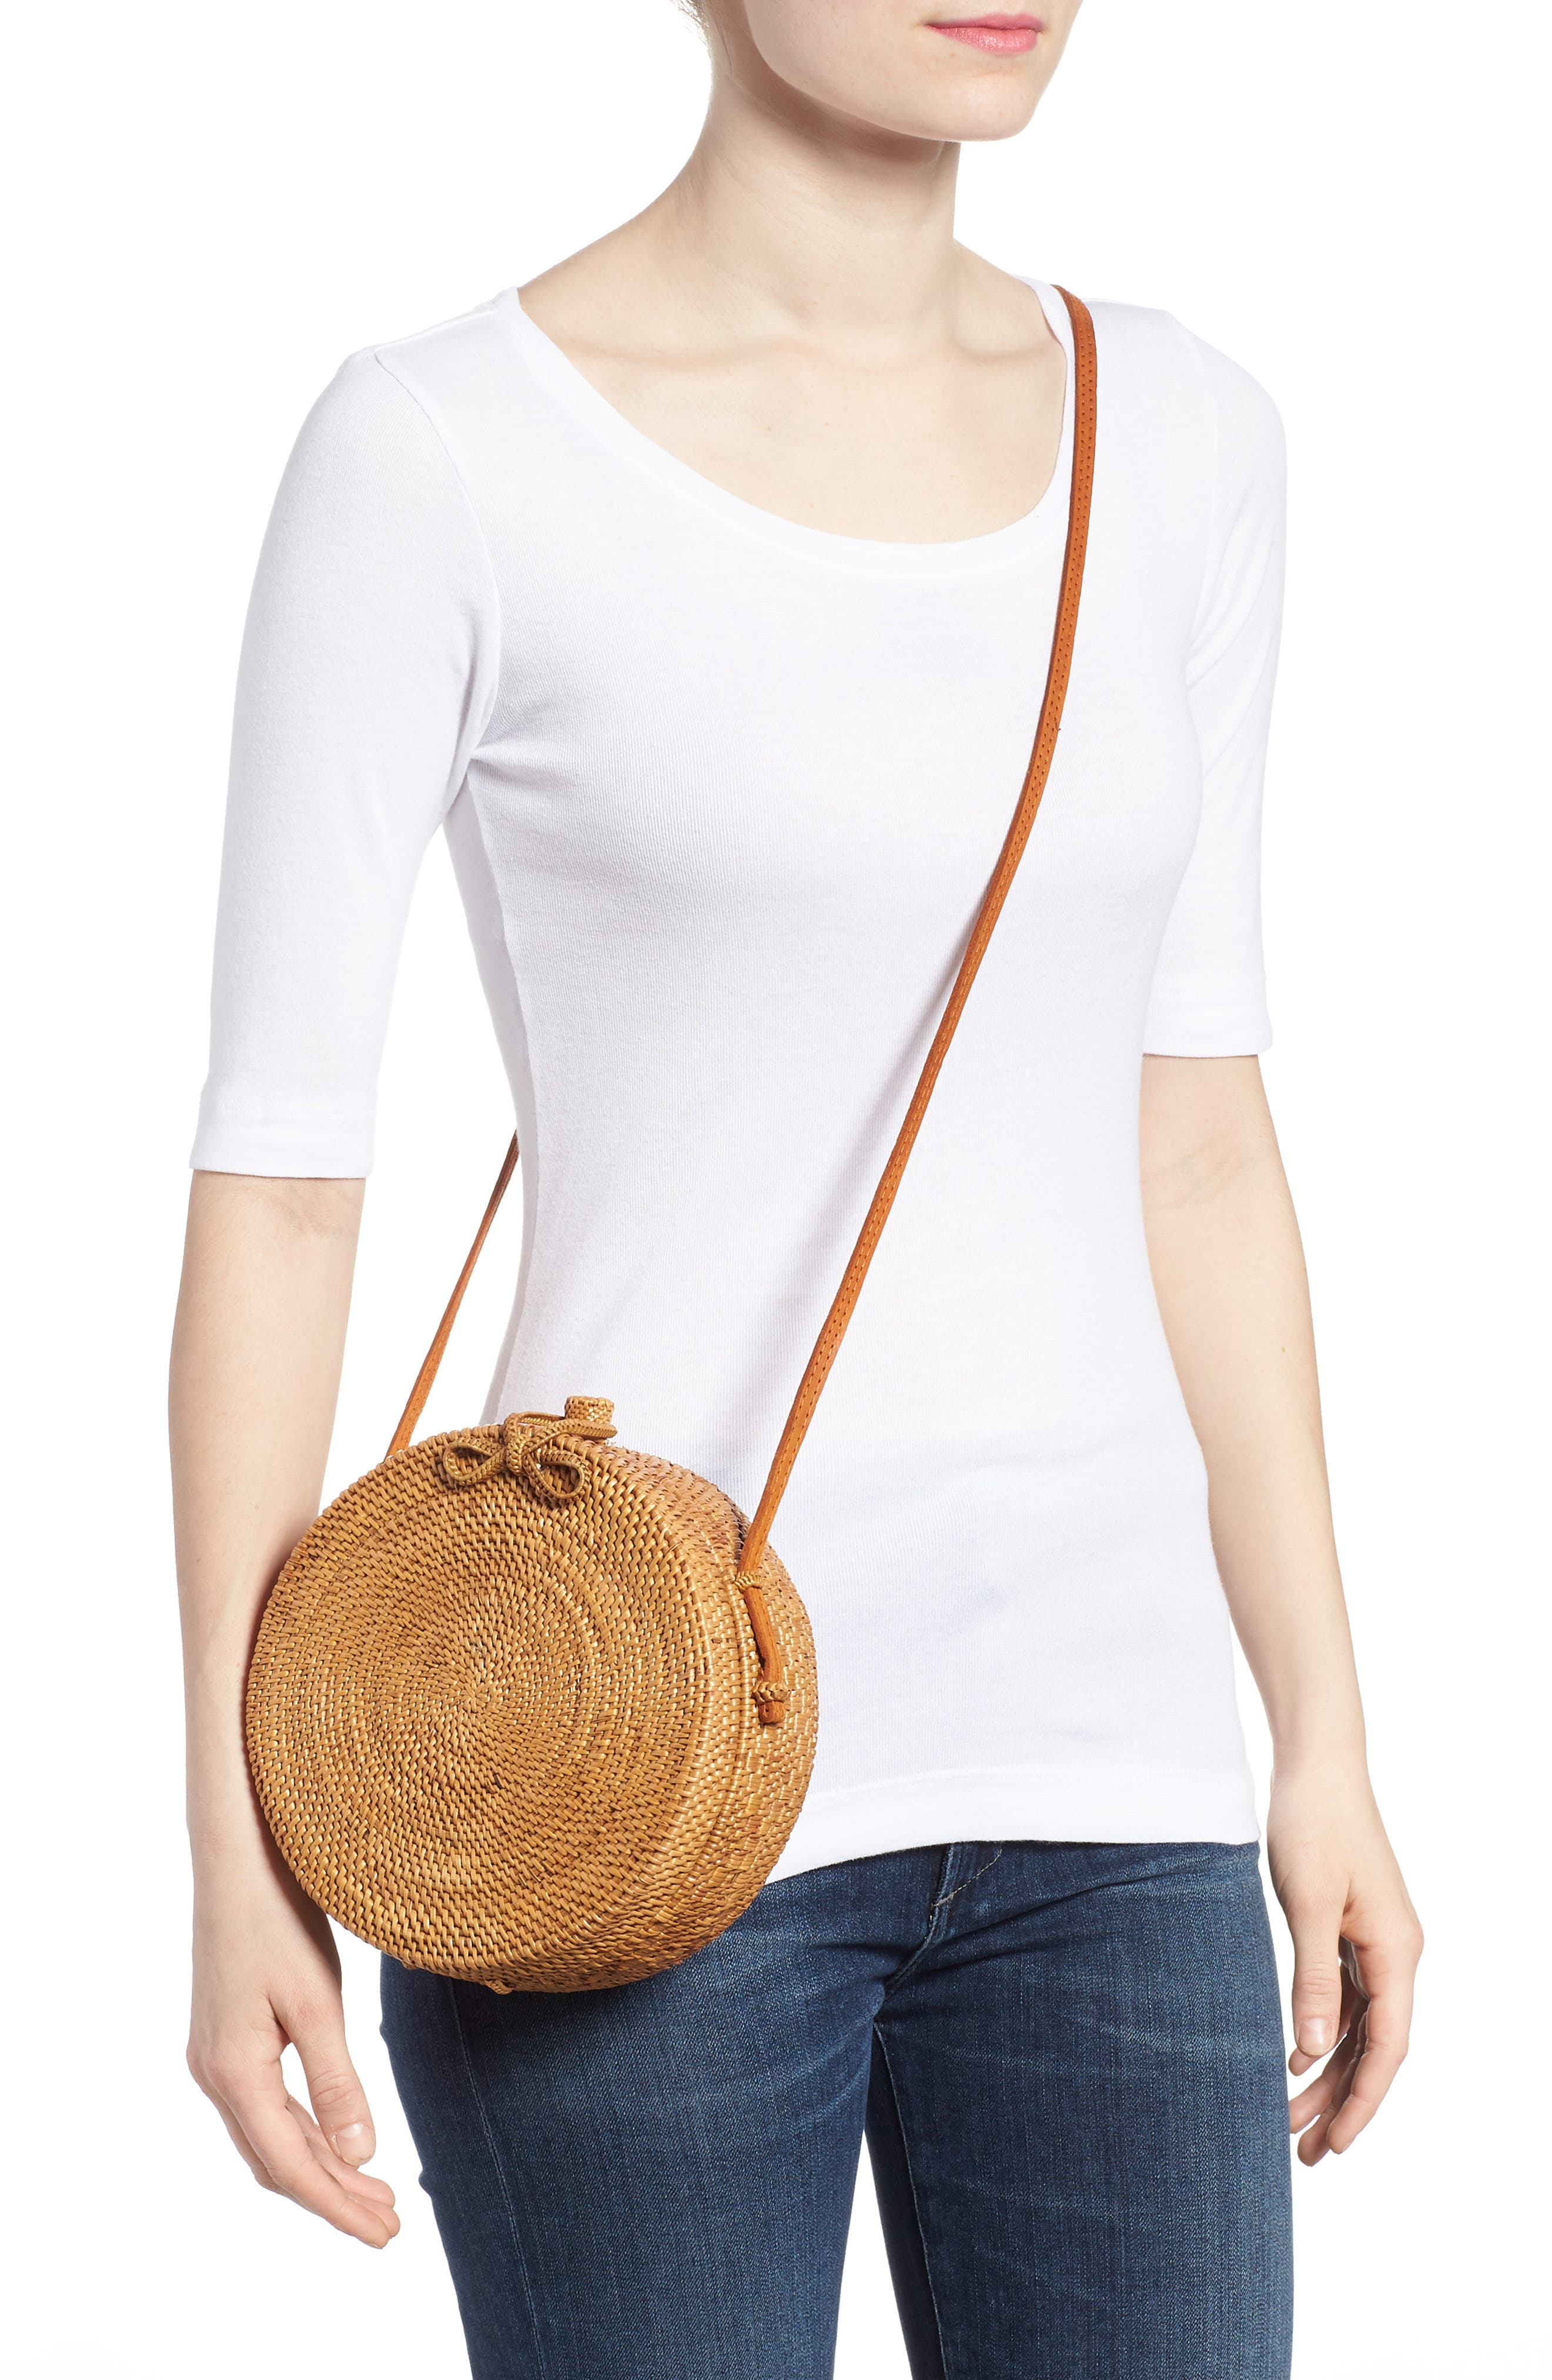 Round Rattan Crossbody Bag,                             Alternate thumbnail 2, color,                             230